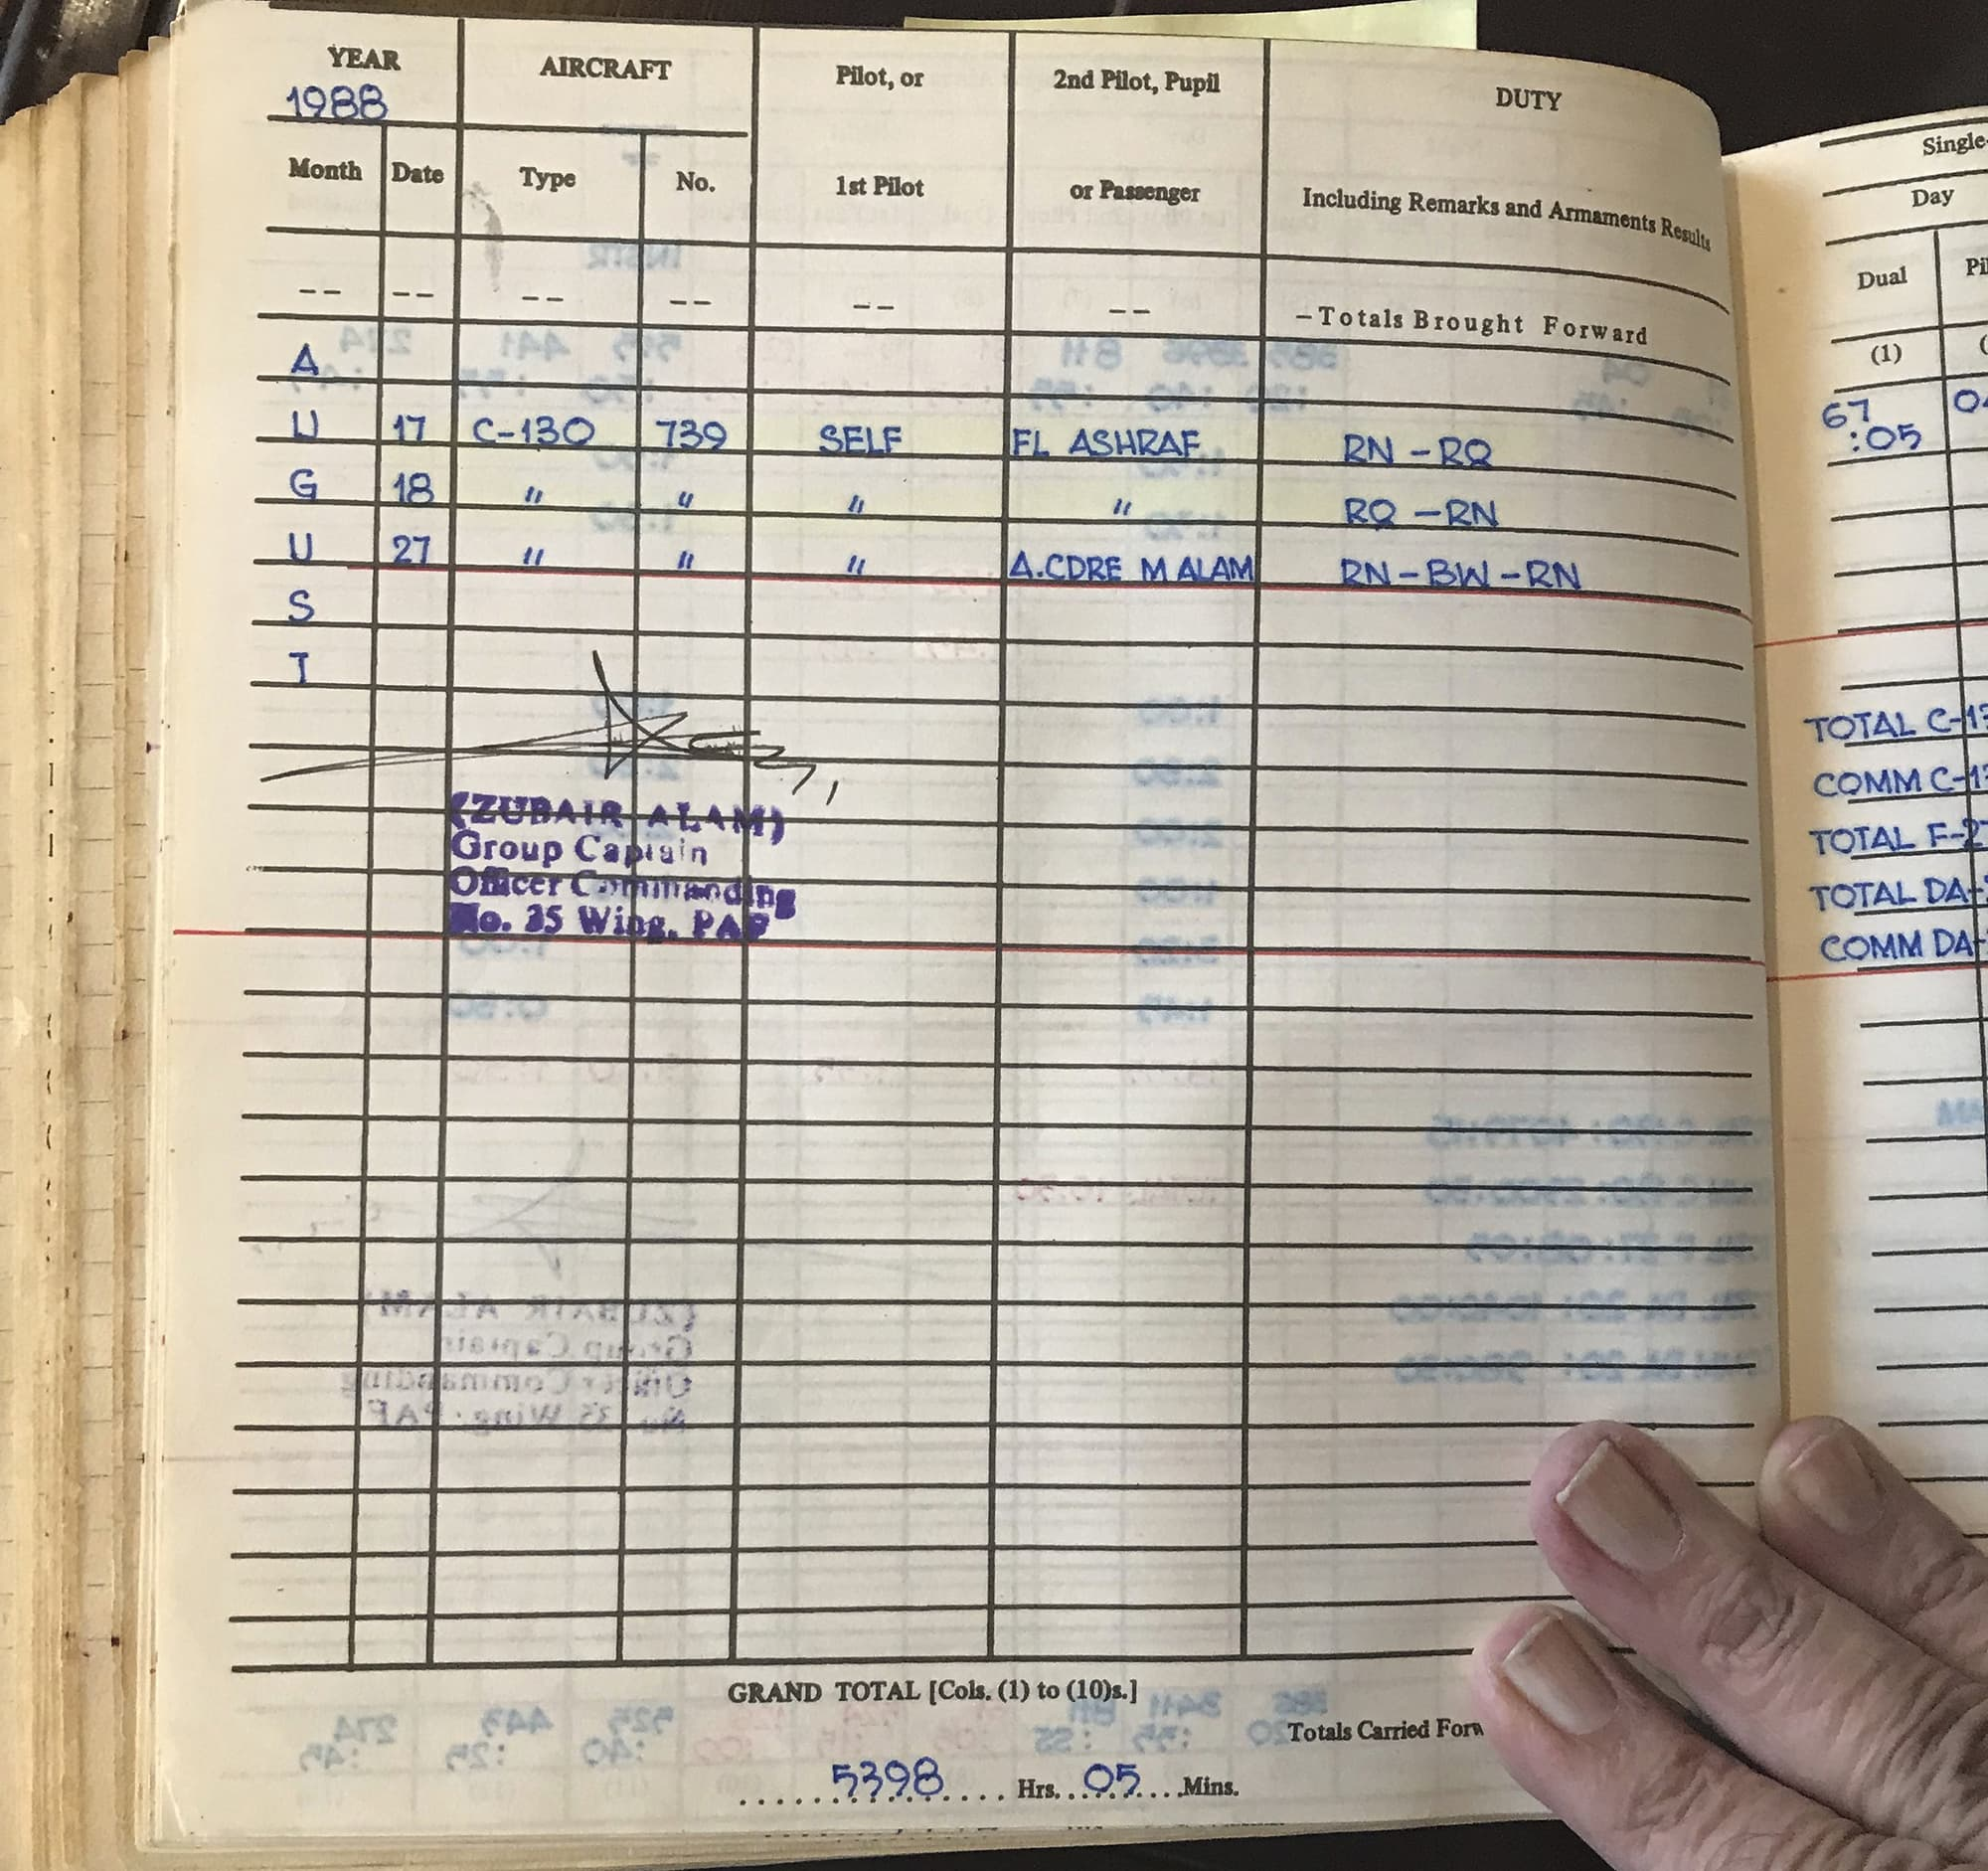 Wing Commander Munawar Alam shows the logbook entry for his back-up C-130 flight on Aug 17, 1988. — White Star